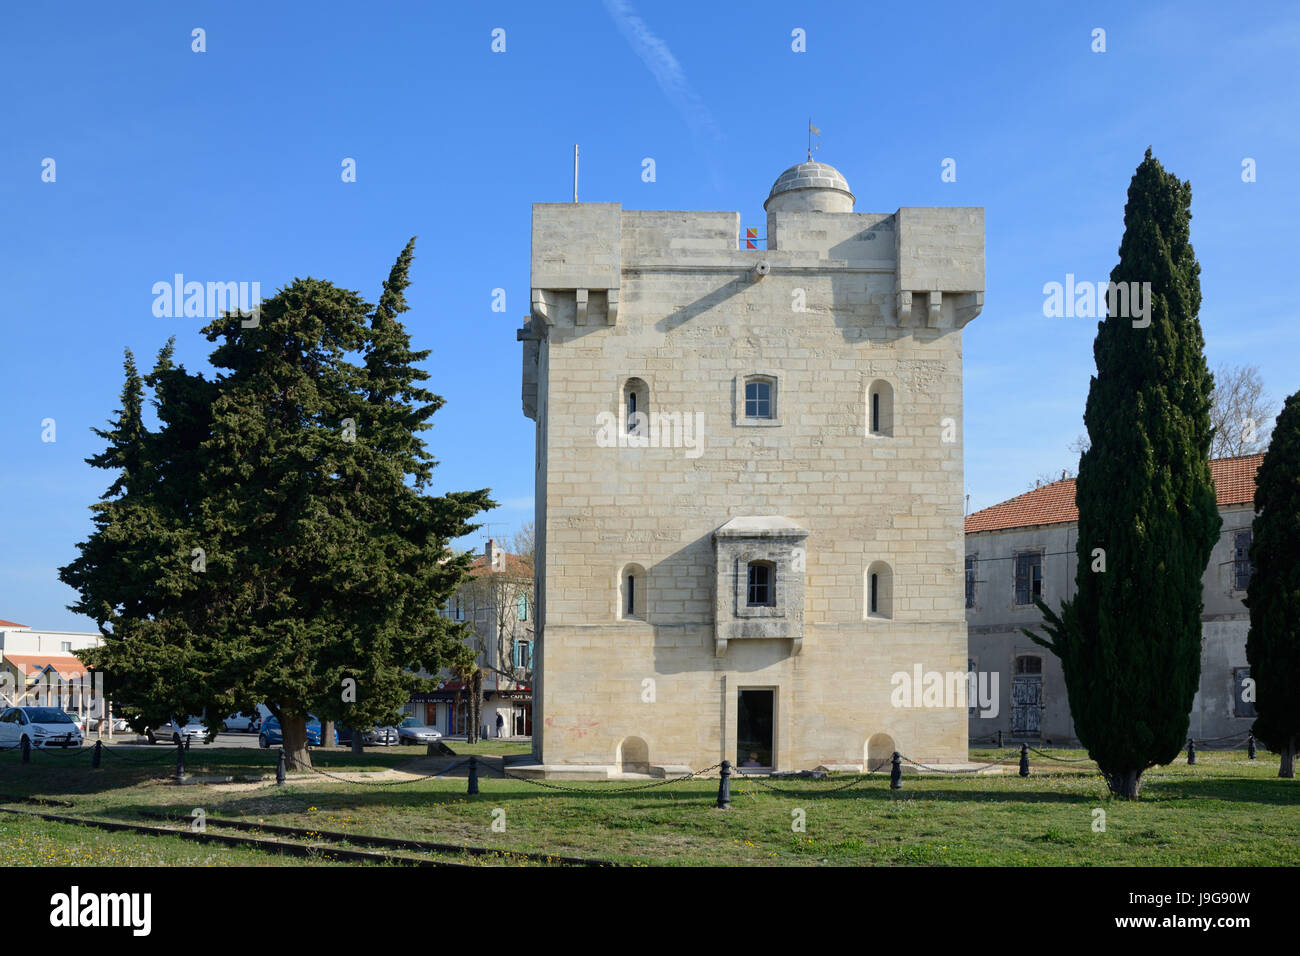 The Medieval Stone Tower or Saint Louis Tower (1737) at Port Saint Louis or Port-Saint-Louis-du-RhôneCamargue - Stock Image